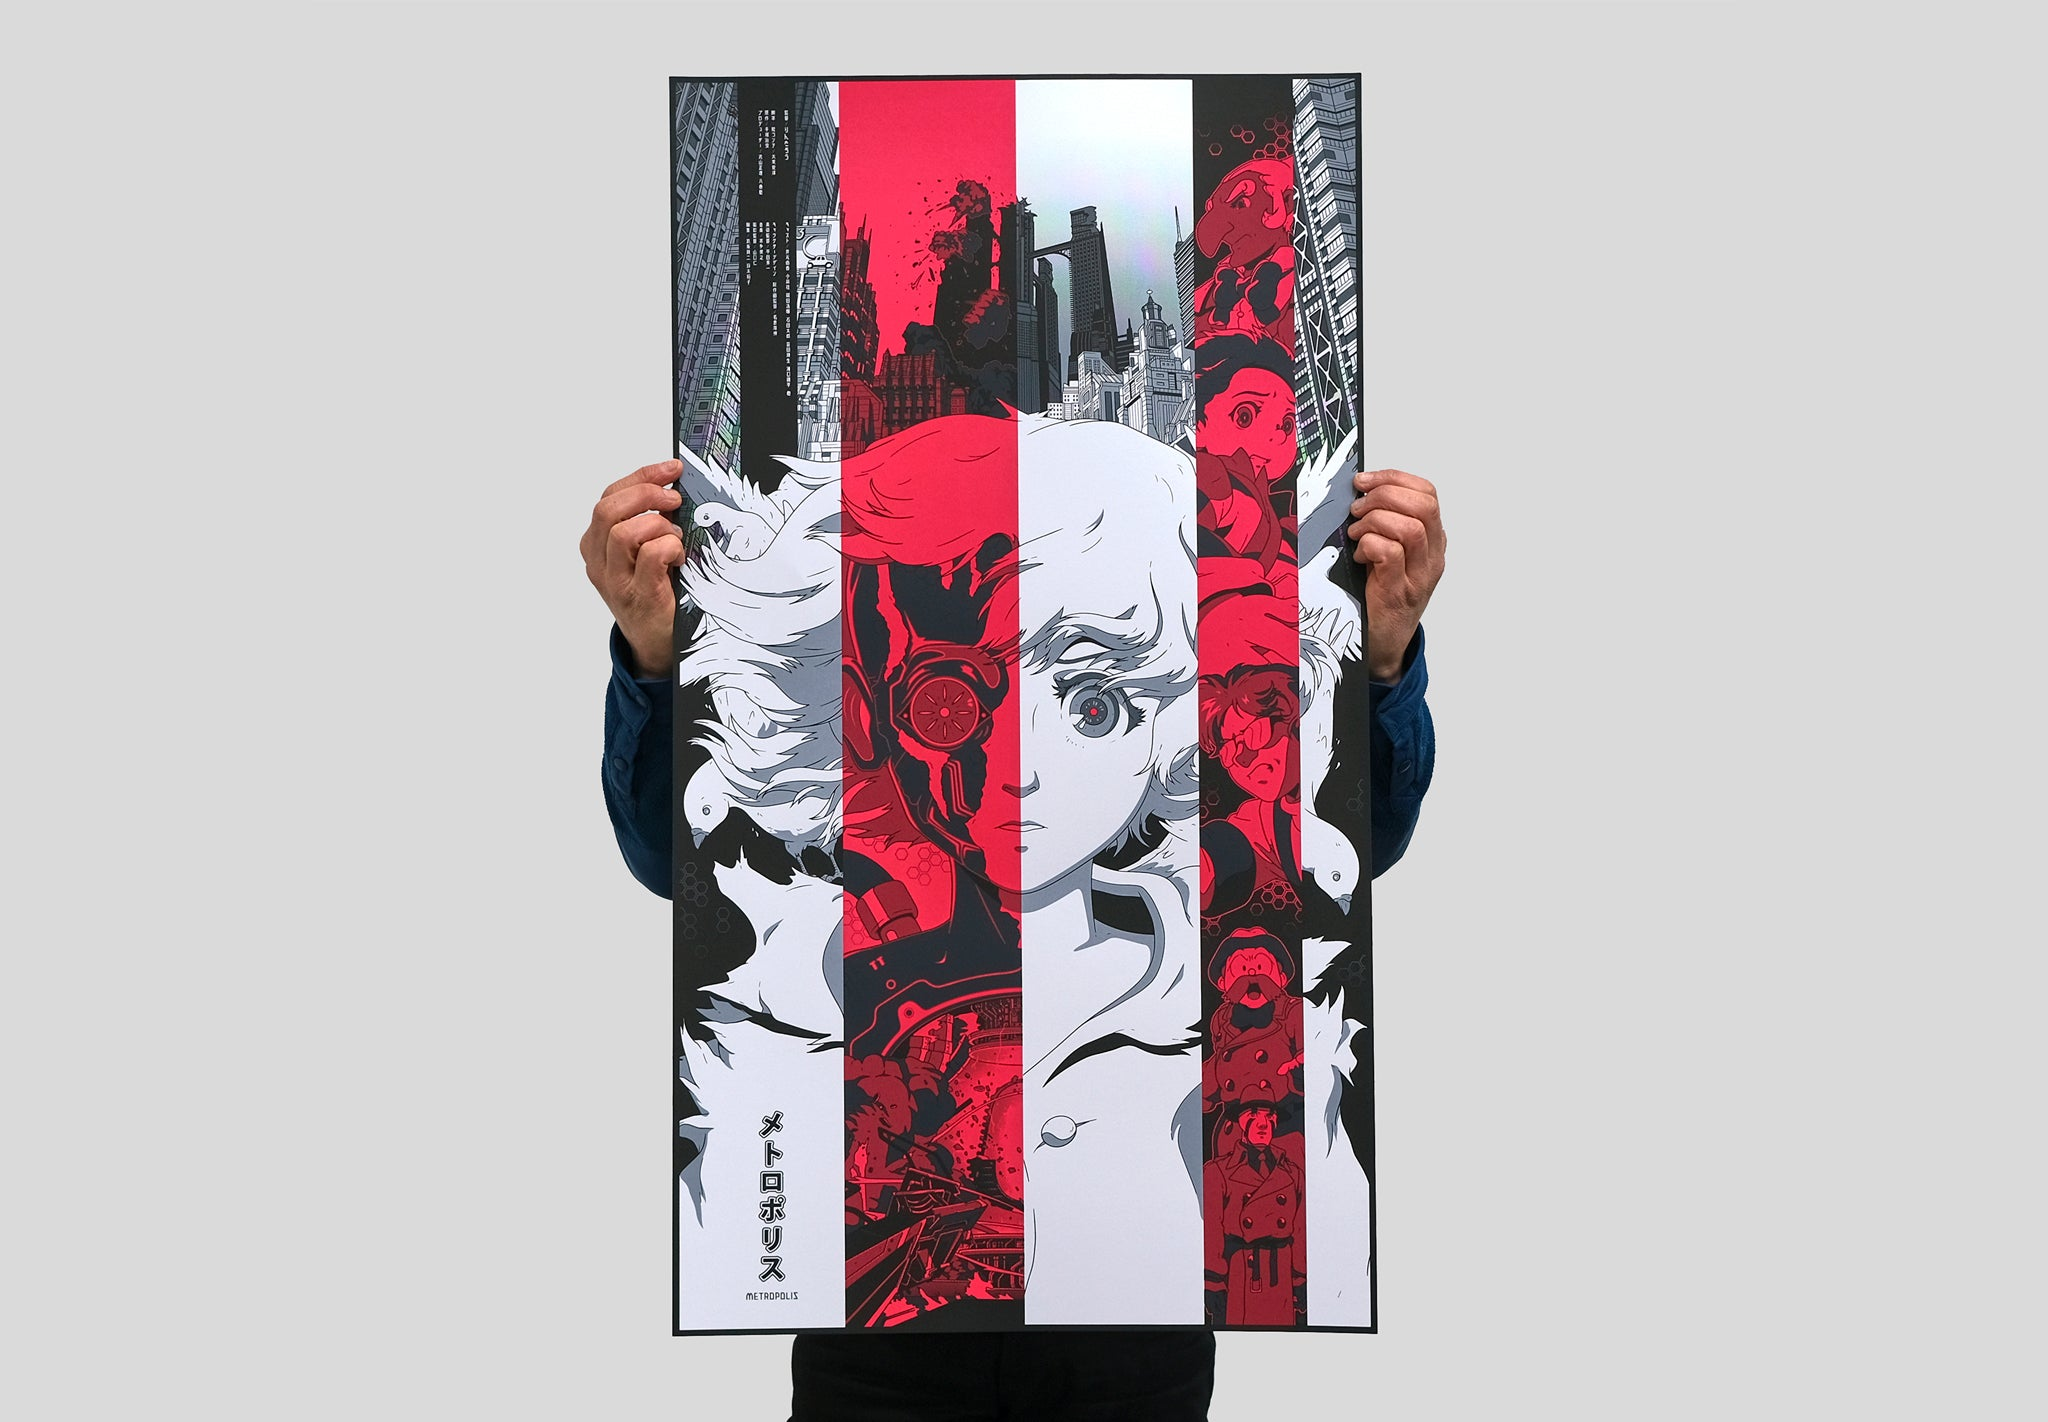 Metropolis poster by Ethan Sharp. Screen printed by White Duck Editions.